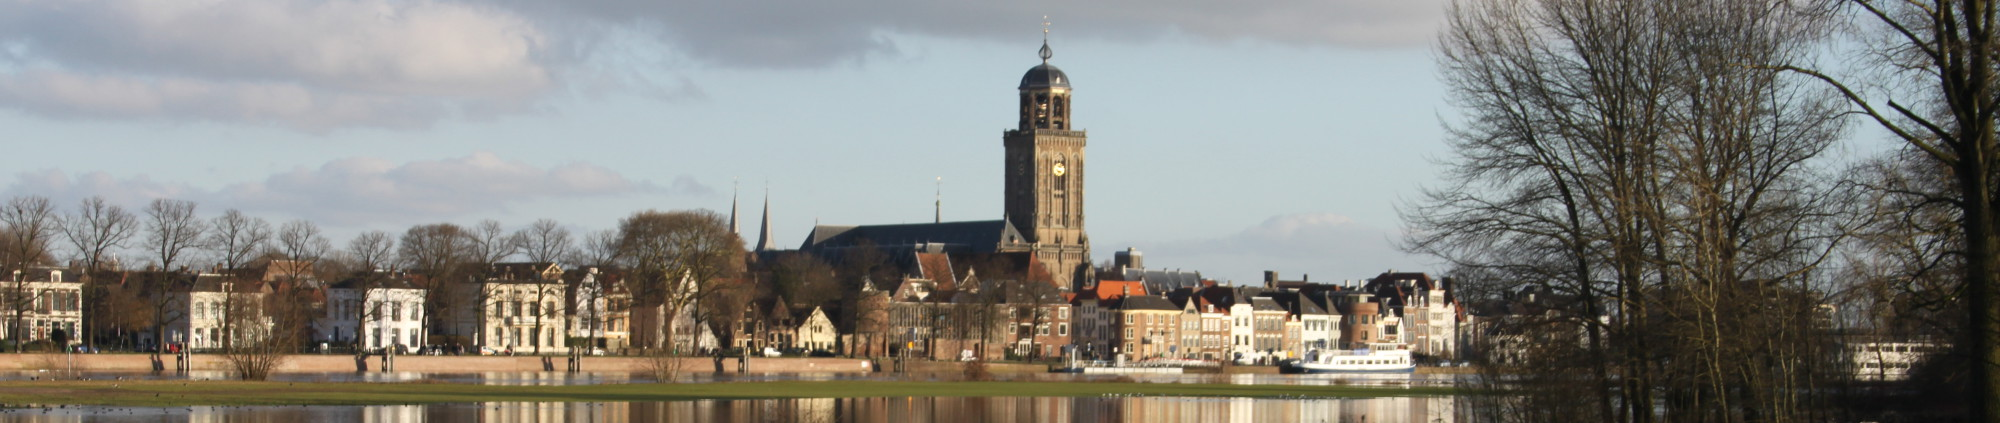 Kerk in Deventer